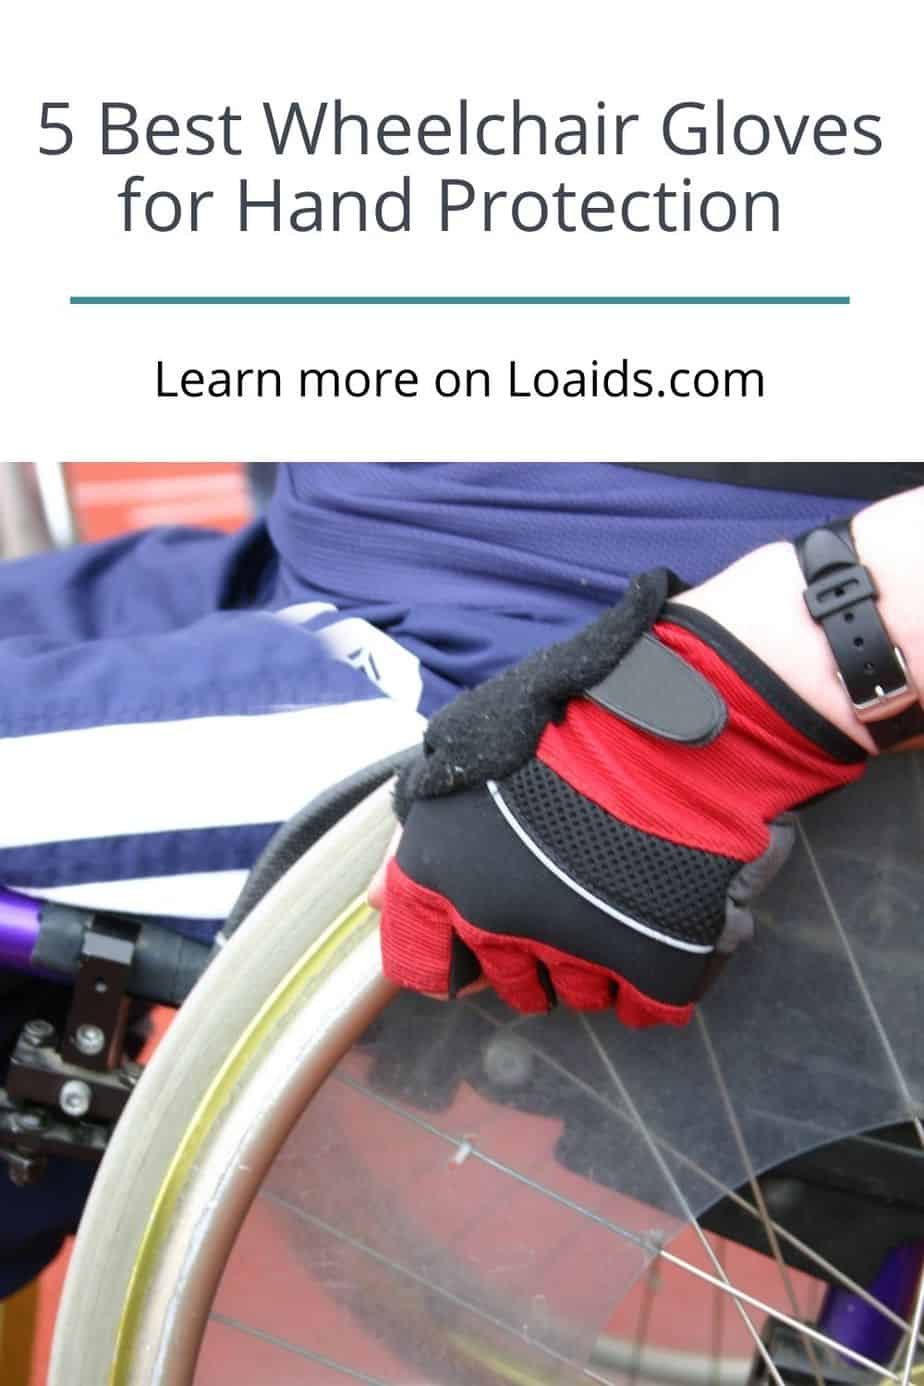 Have you been trying to find the best wheelchair gloves for you? We've got you! Our expert came up with a review guide to help you choose the perfect pair.